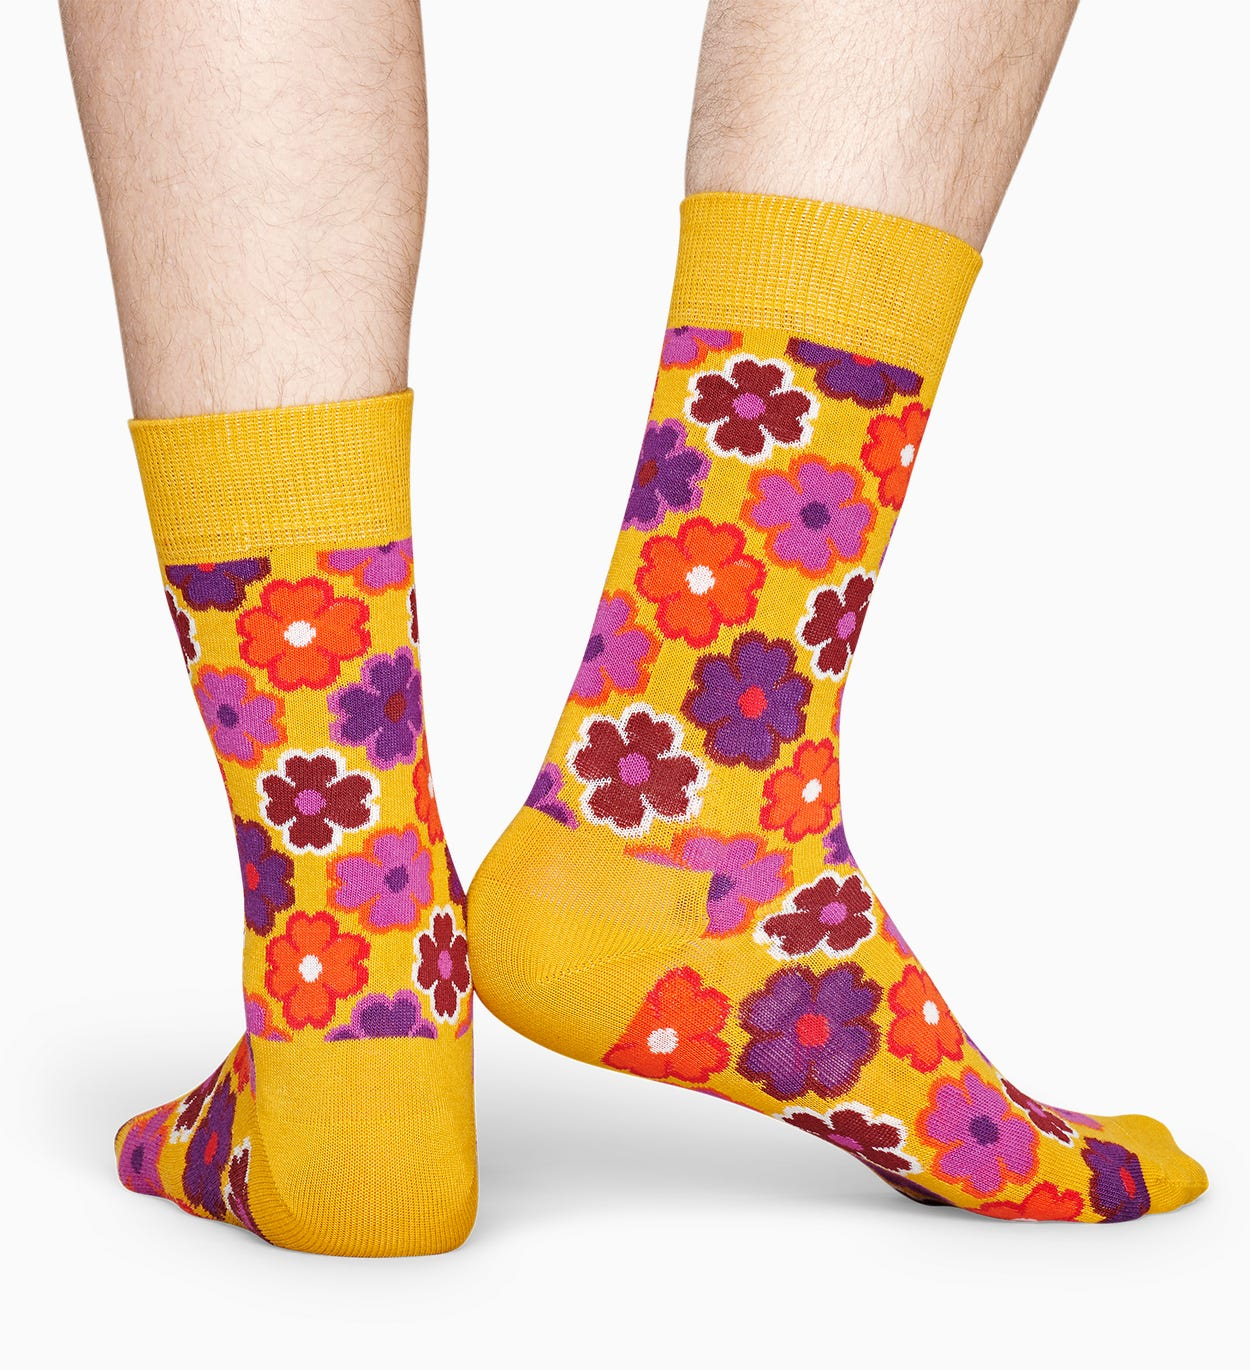 Chaussettes Jaunes à motif: Flower Power | Happy Socks